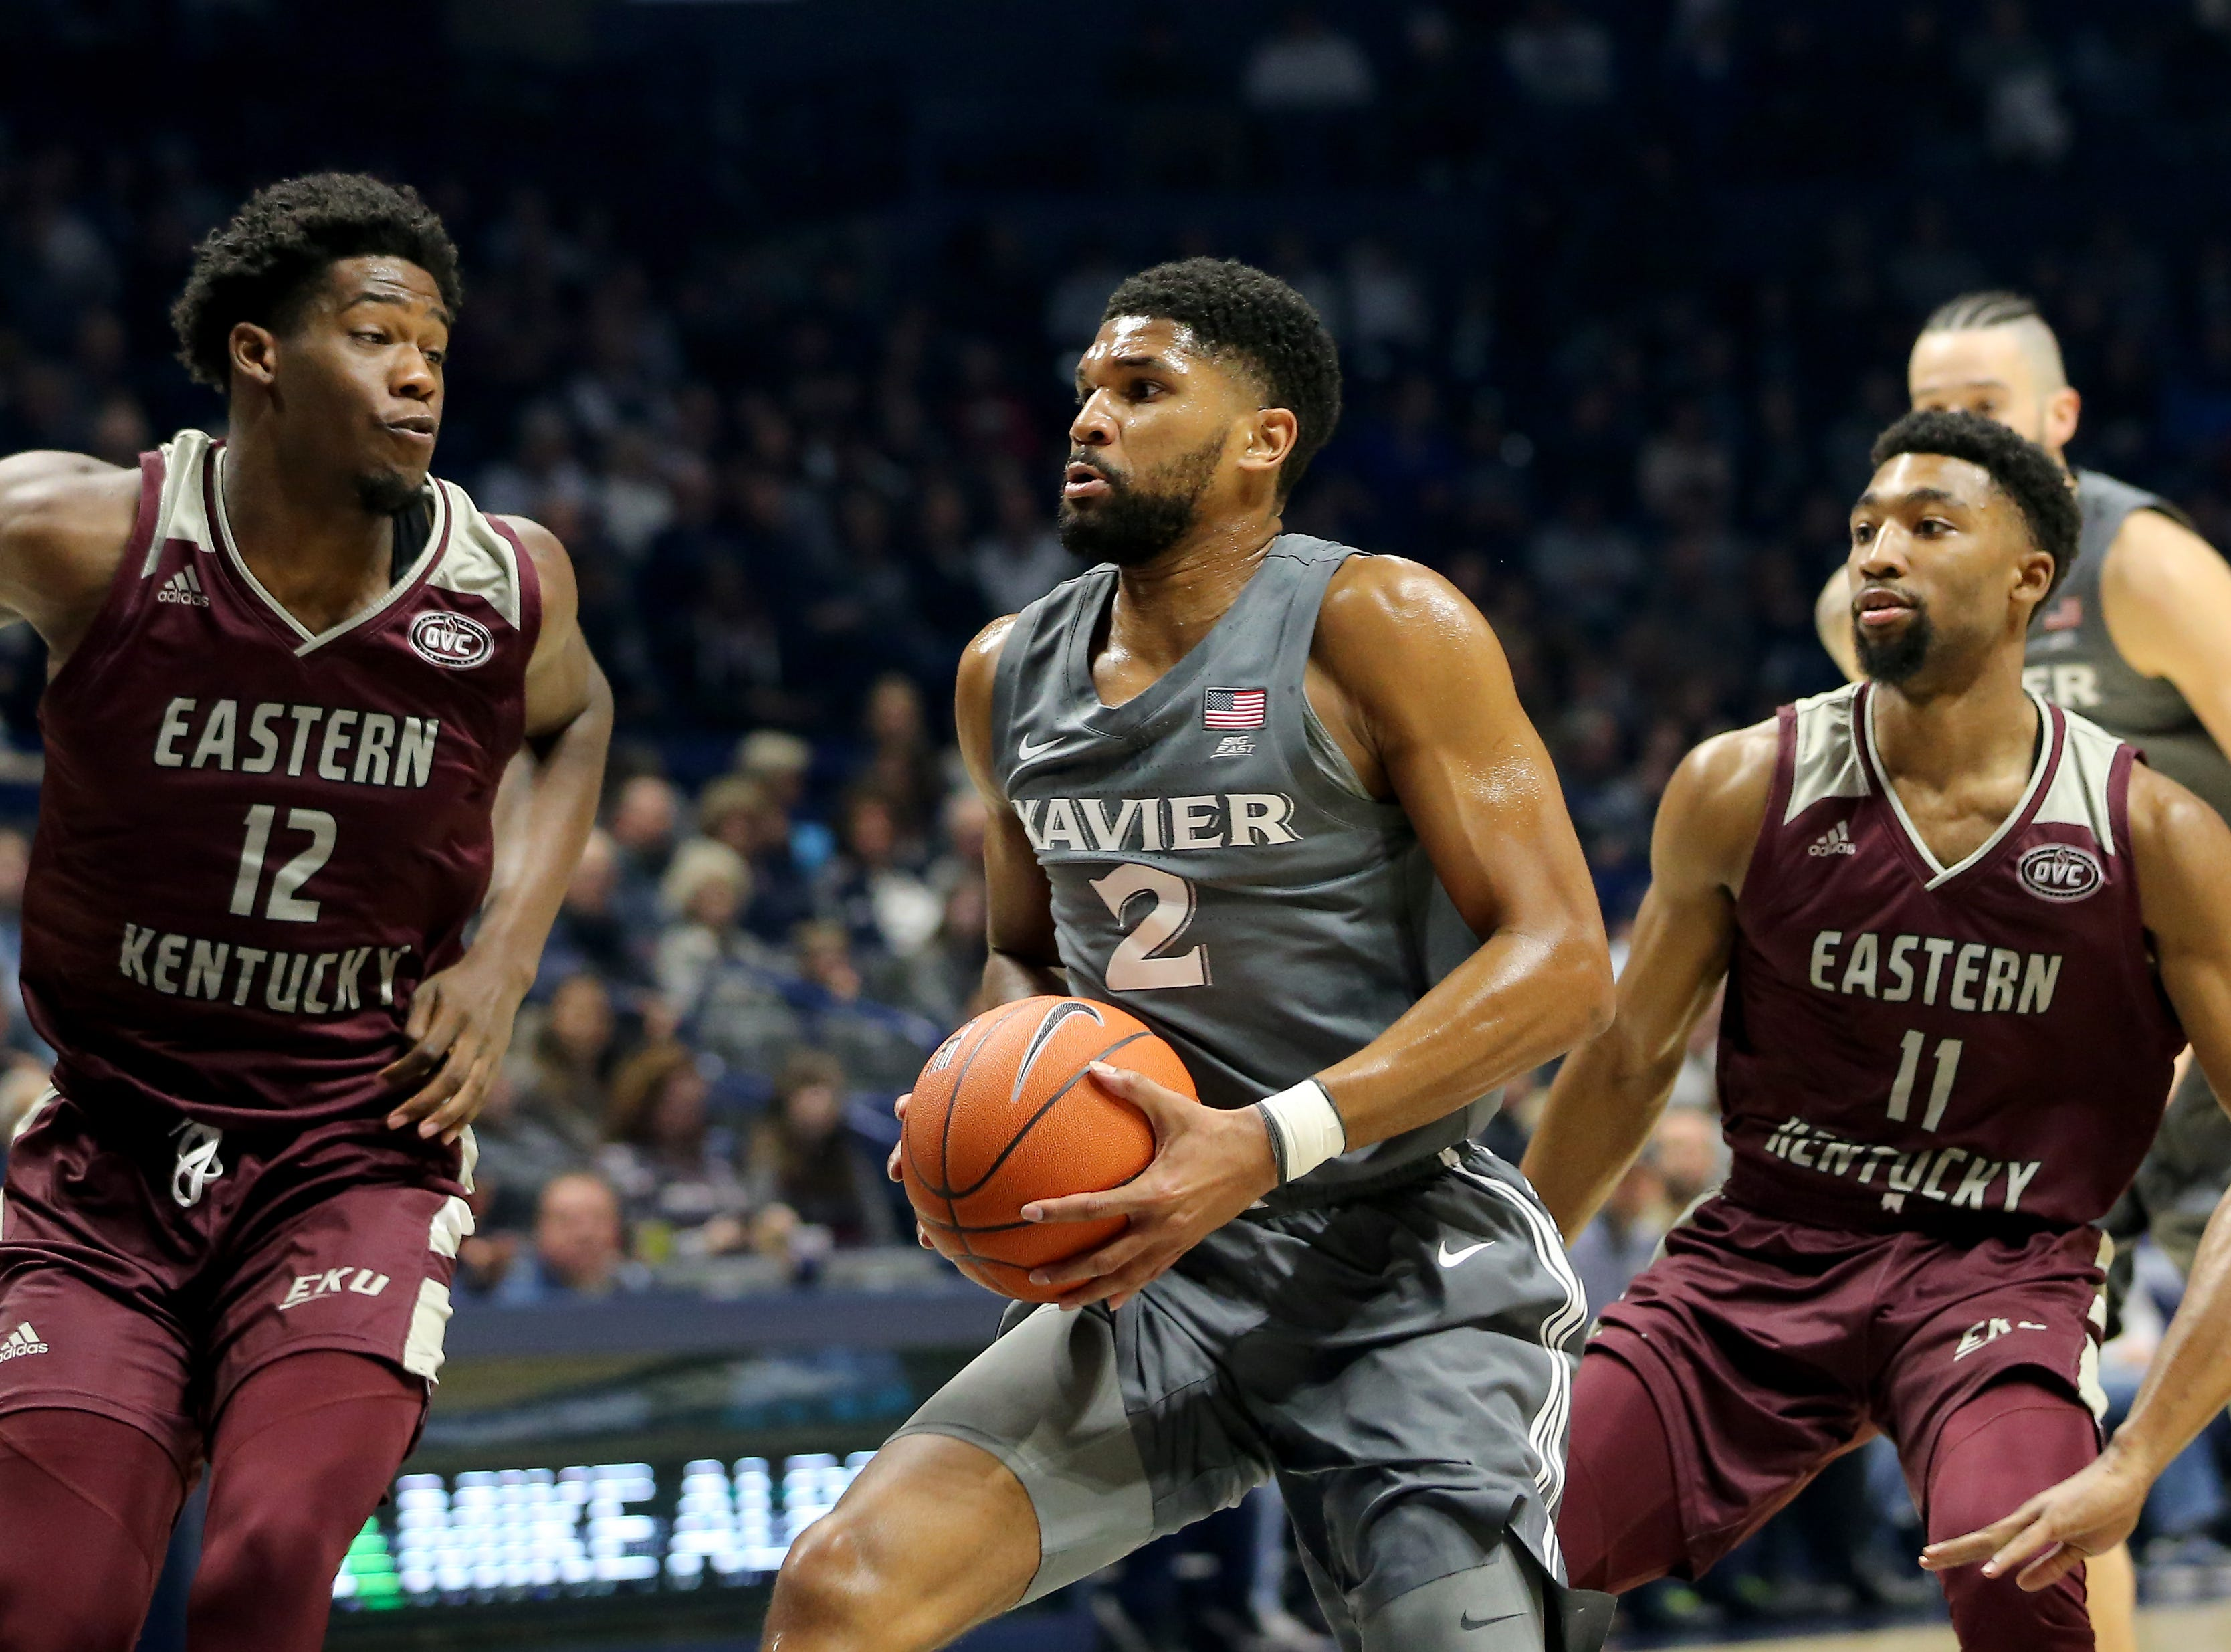 Xavier Musketeers guard Kyle Castlin (2) drives to the basket as Eastern Kentucky Colonels forward Tre King (12), left, and Eastern Kentucky Colonels guard Jomaru Brown (11), right, defend in the first half of an NCAA college basketball game, Saturday, Dec. 15, 2018, at Cintas Center in Cincinnati, Ohio